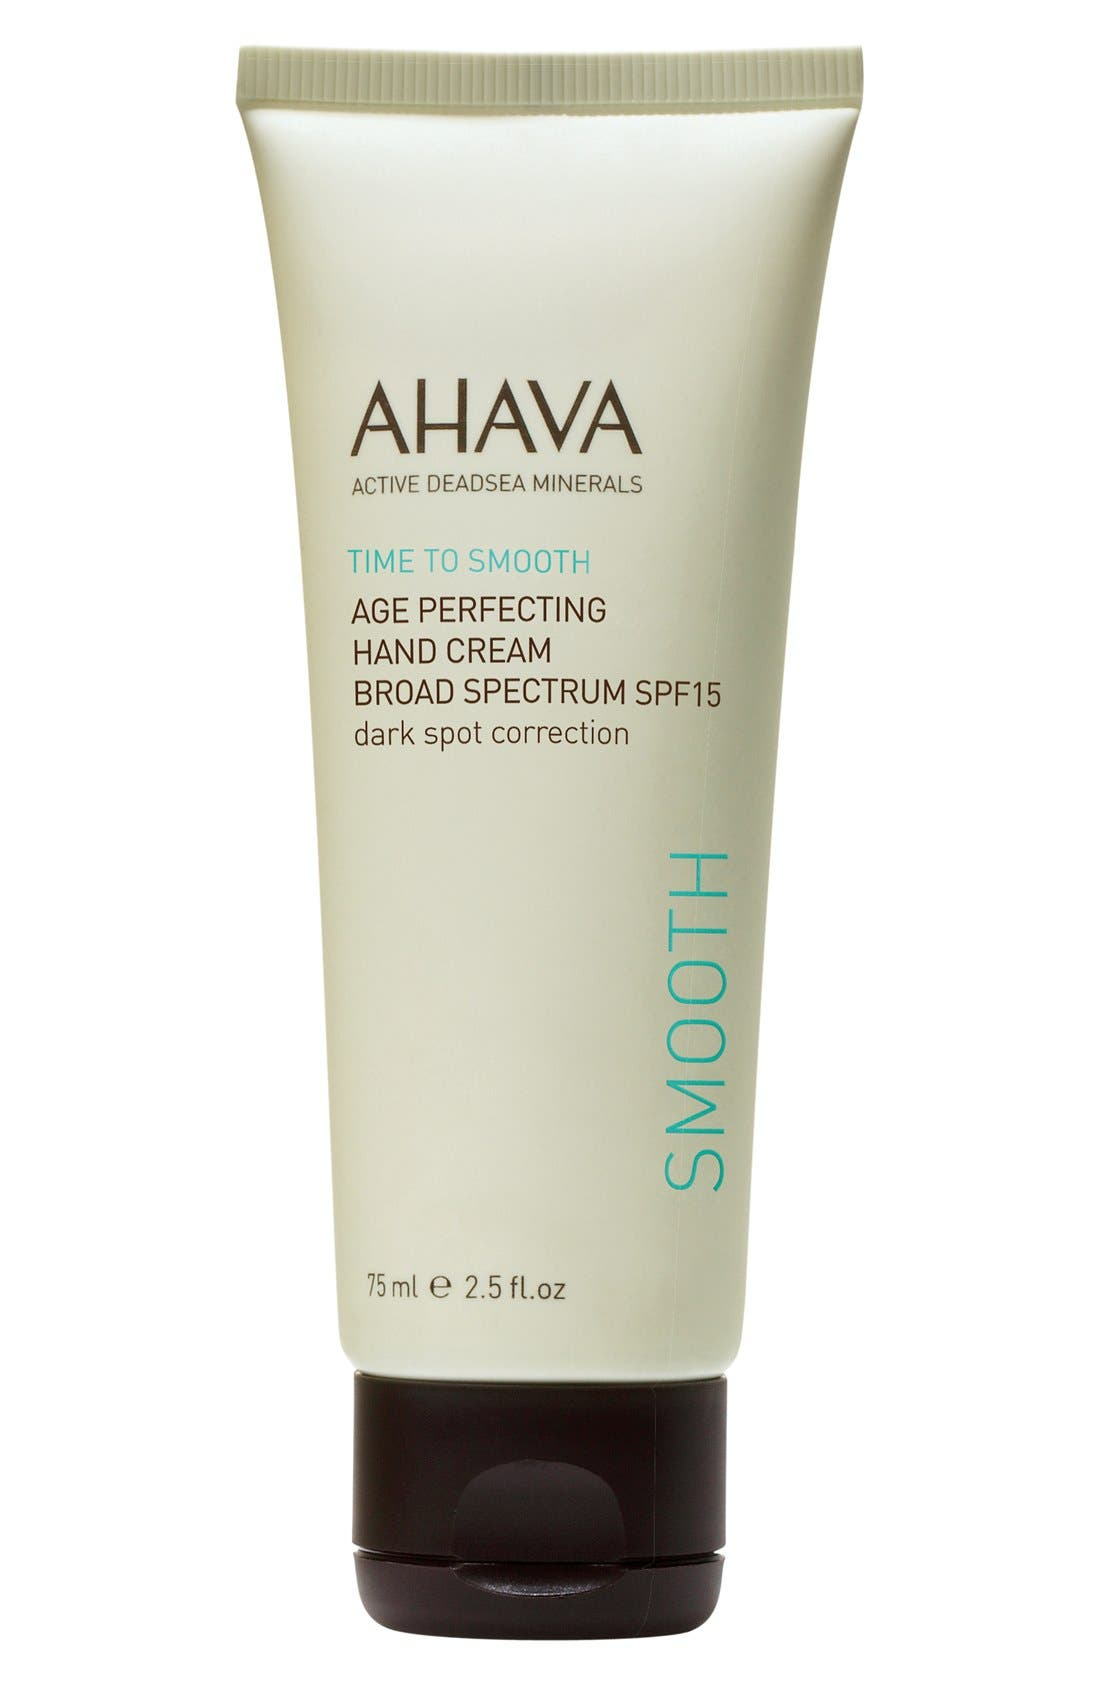 AHAVA 'Time to Smooth' Age Perfecting Hand Cream Broad Spectrum SPF 15